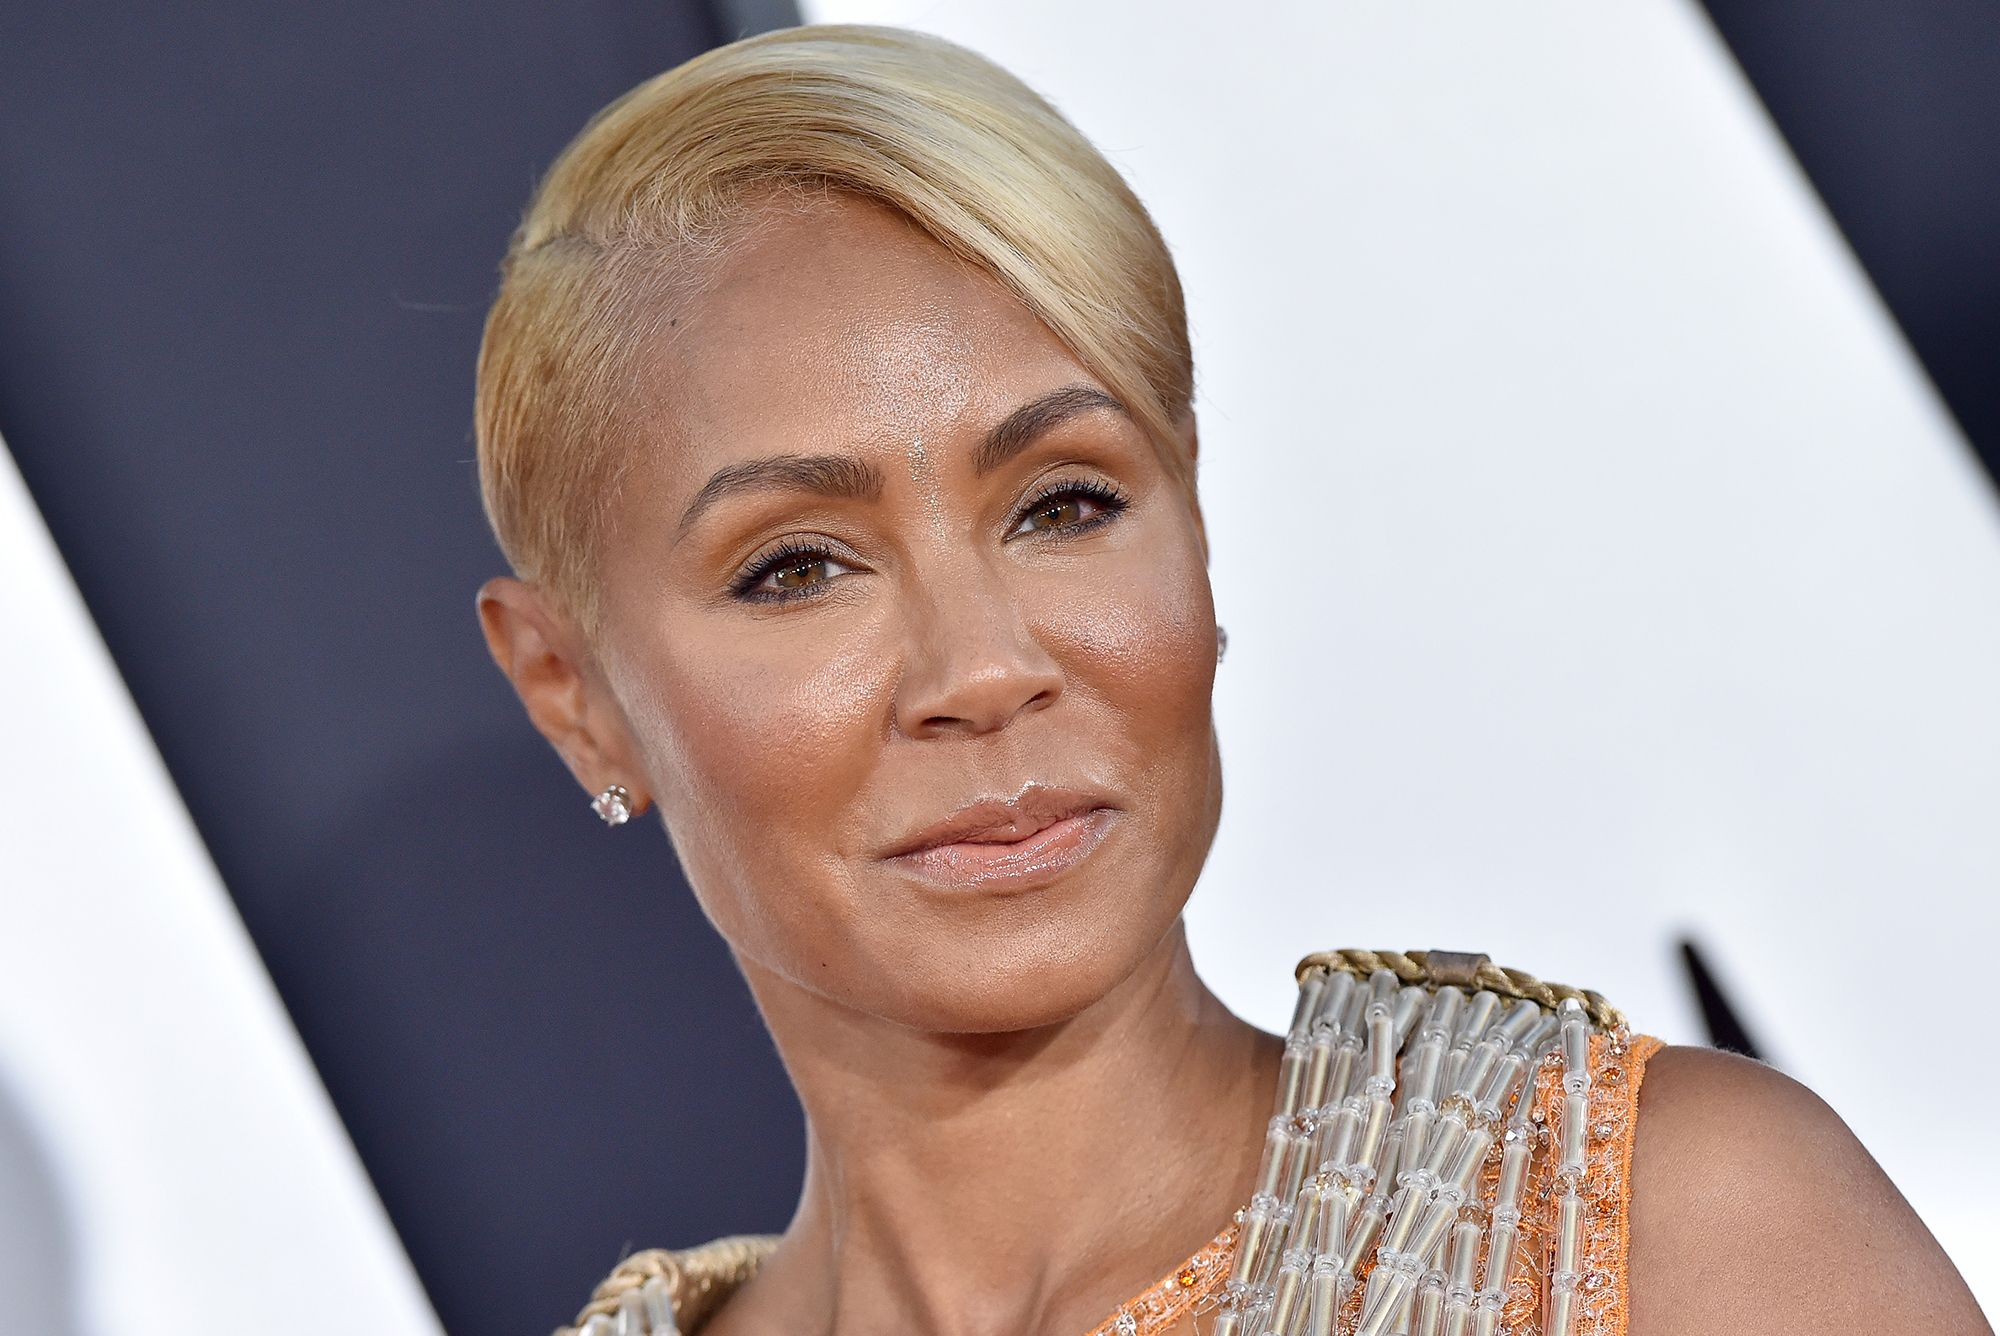 jada-pinkett-smith-posts-new-pic-of-her-shaved-head-and-fans-love-it